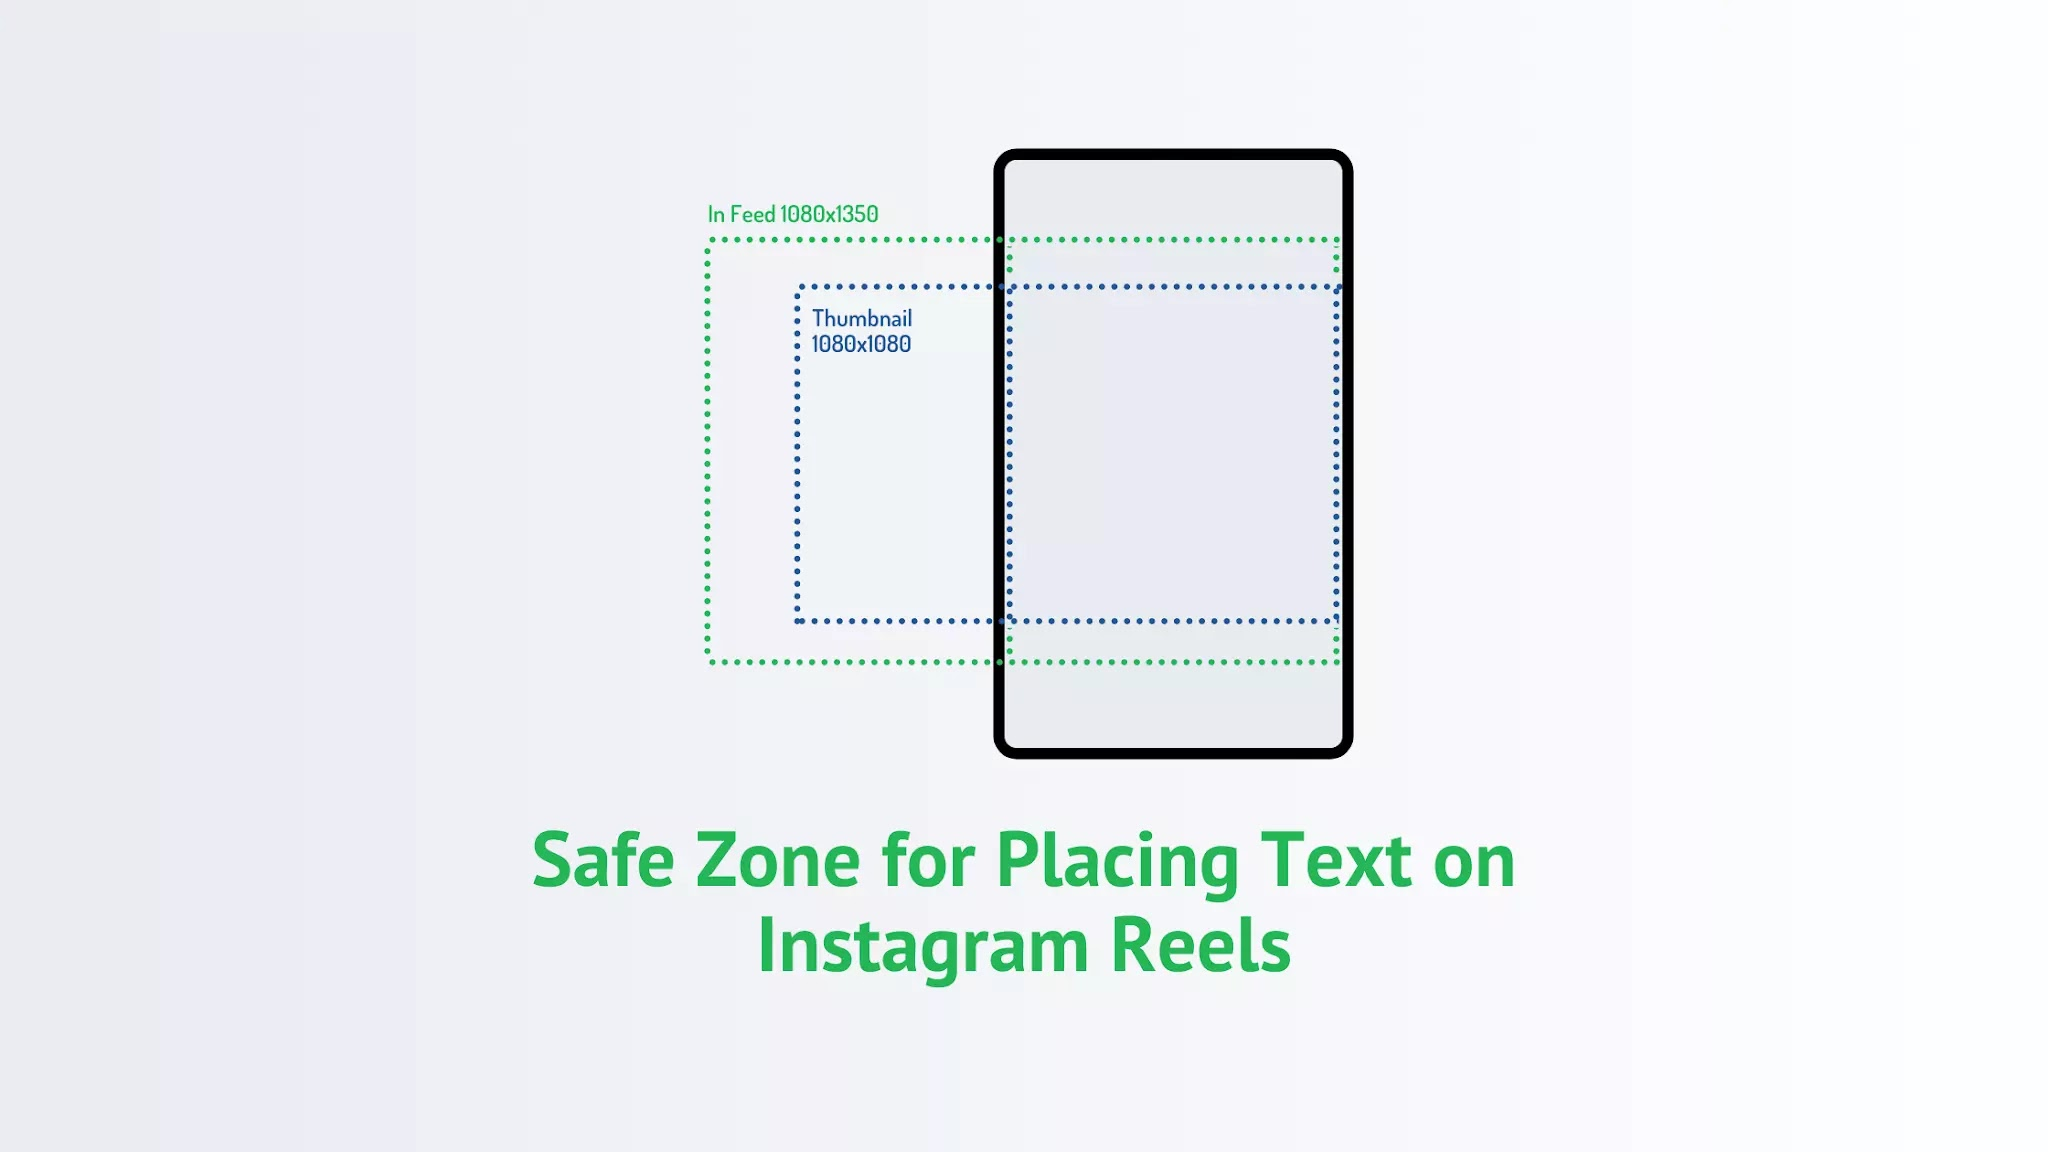 Safe zone for placing text on Reels